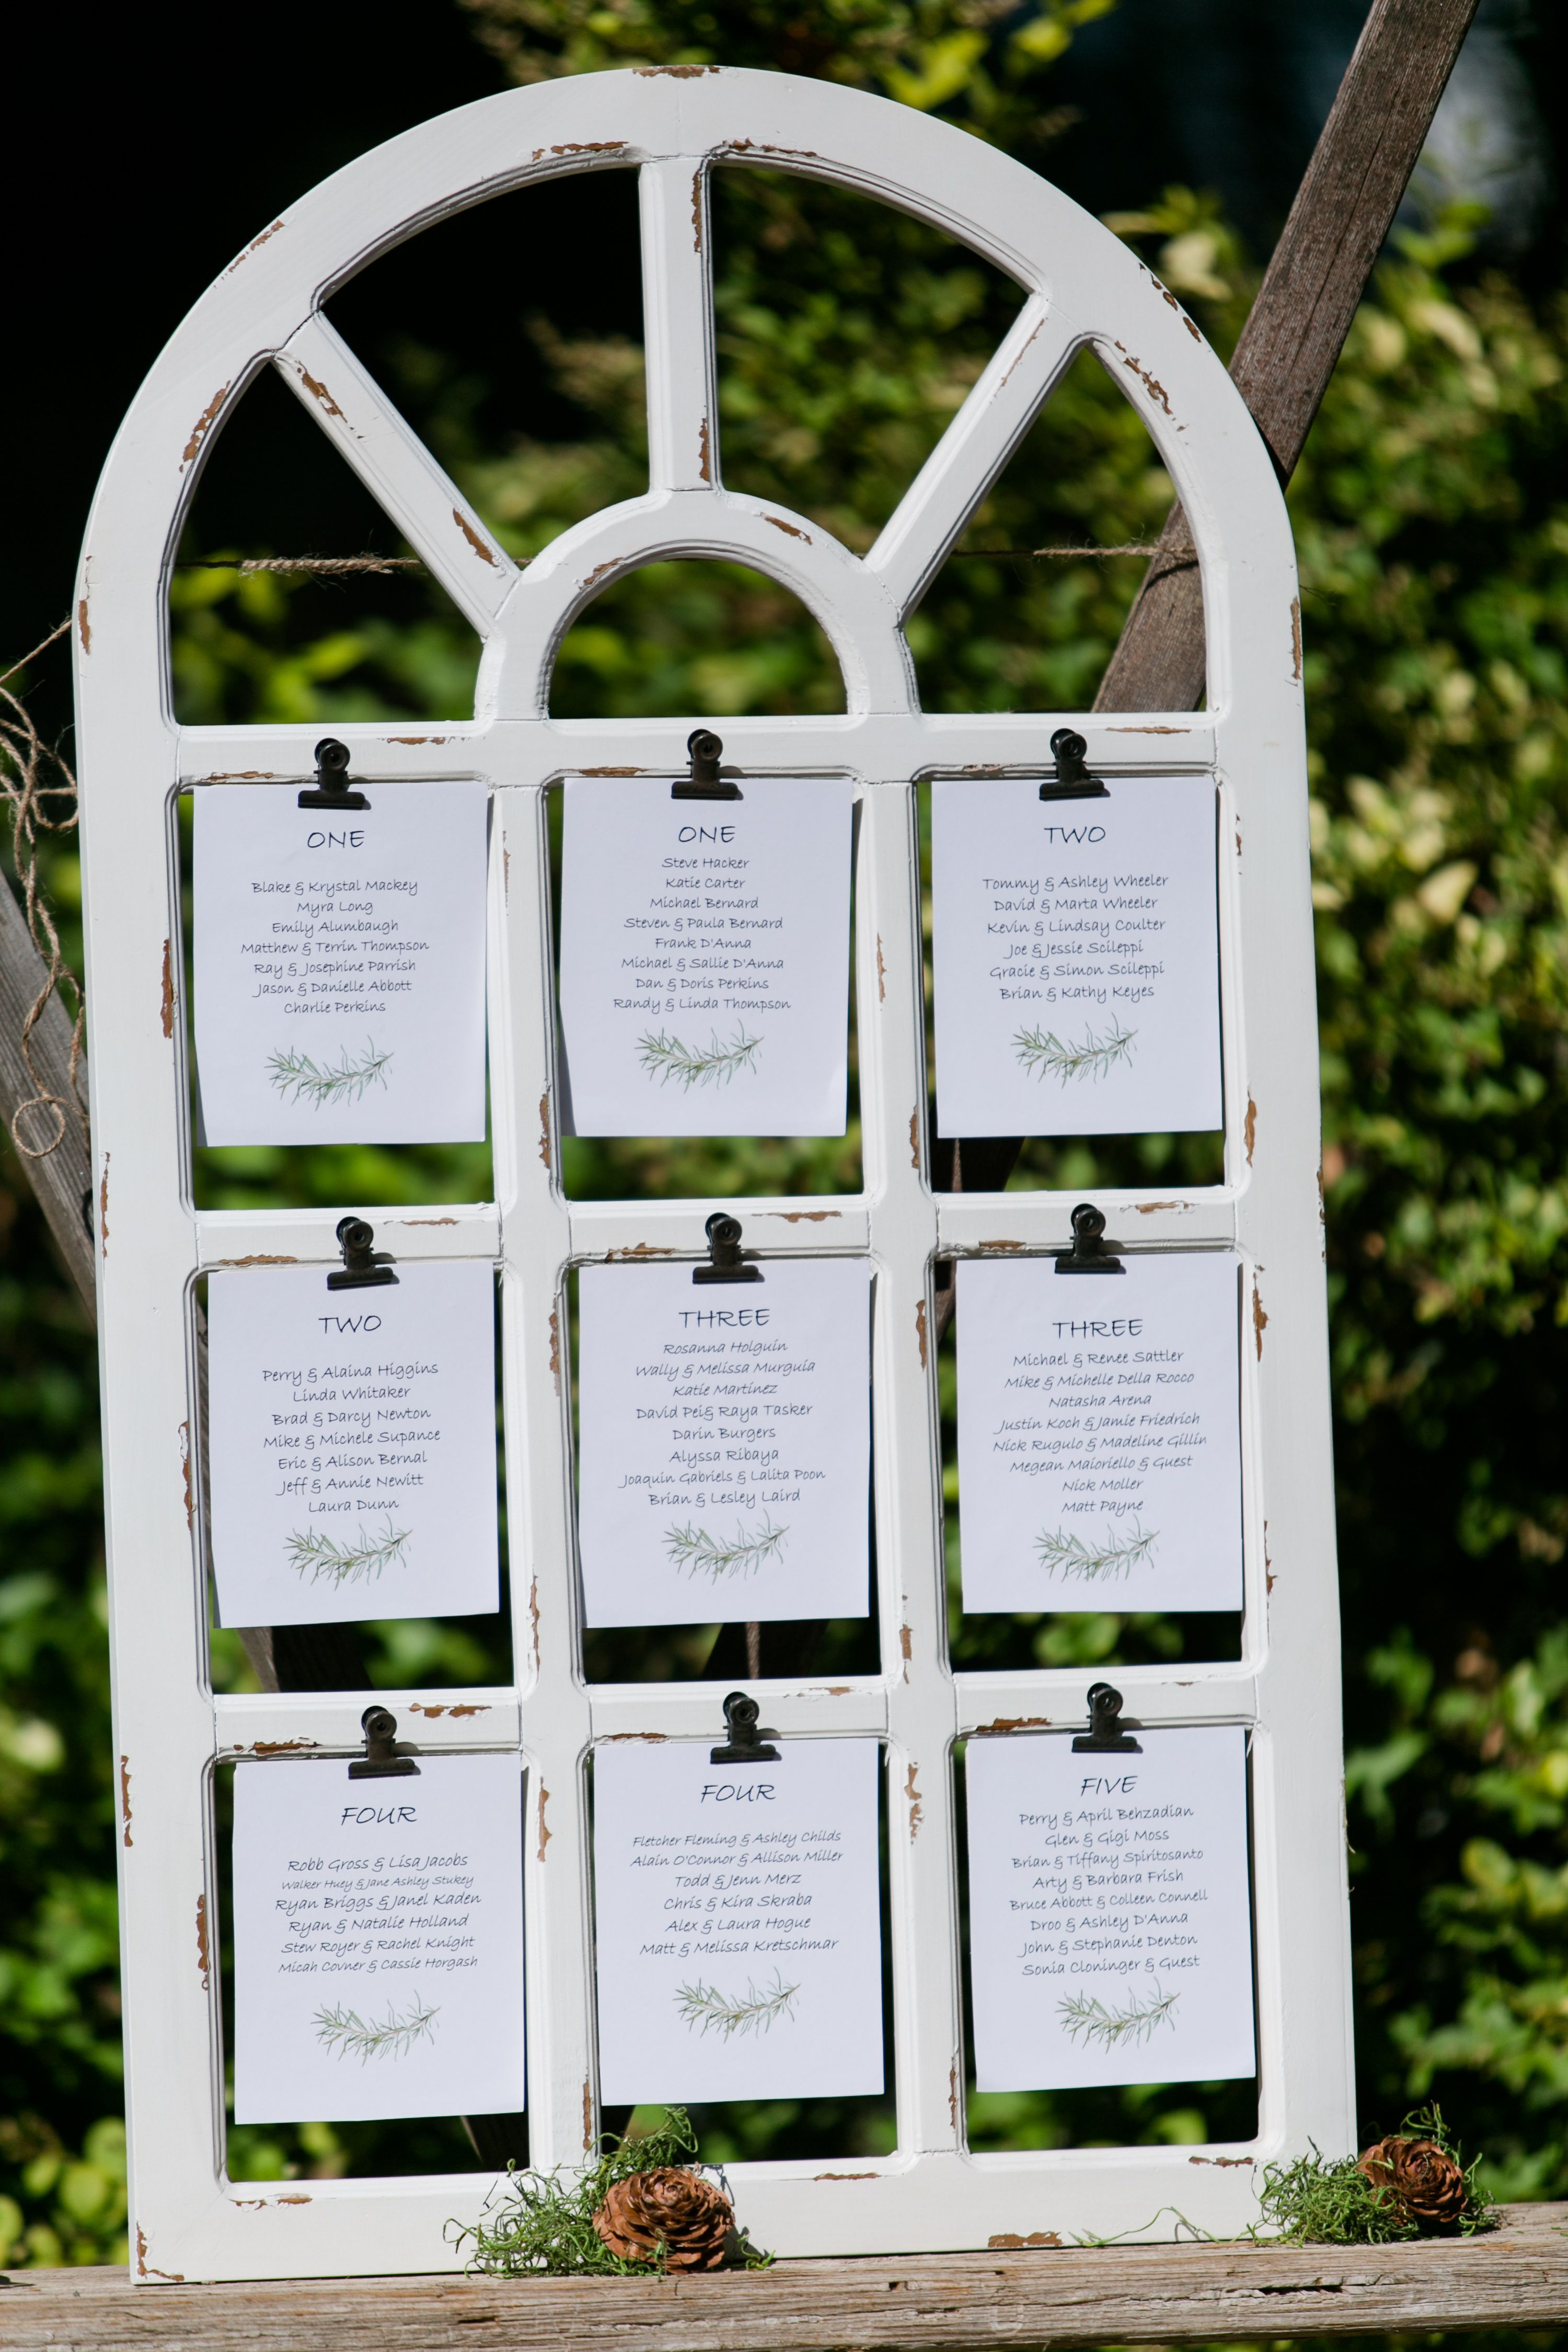 35 Outdoor Wedding Ideas - Decorations for a Fun Outside Spring Wedding